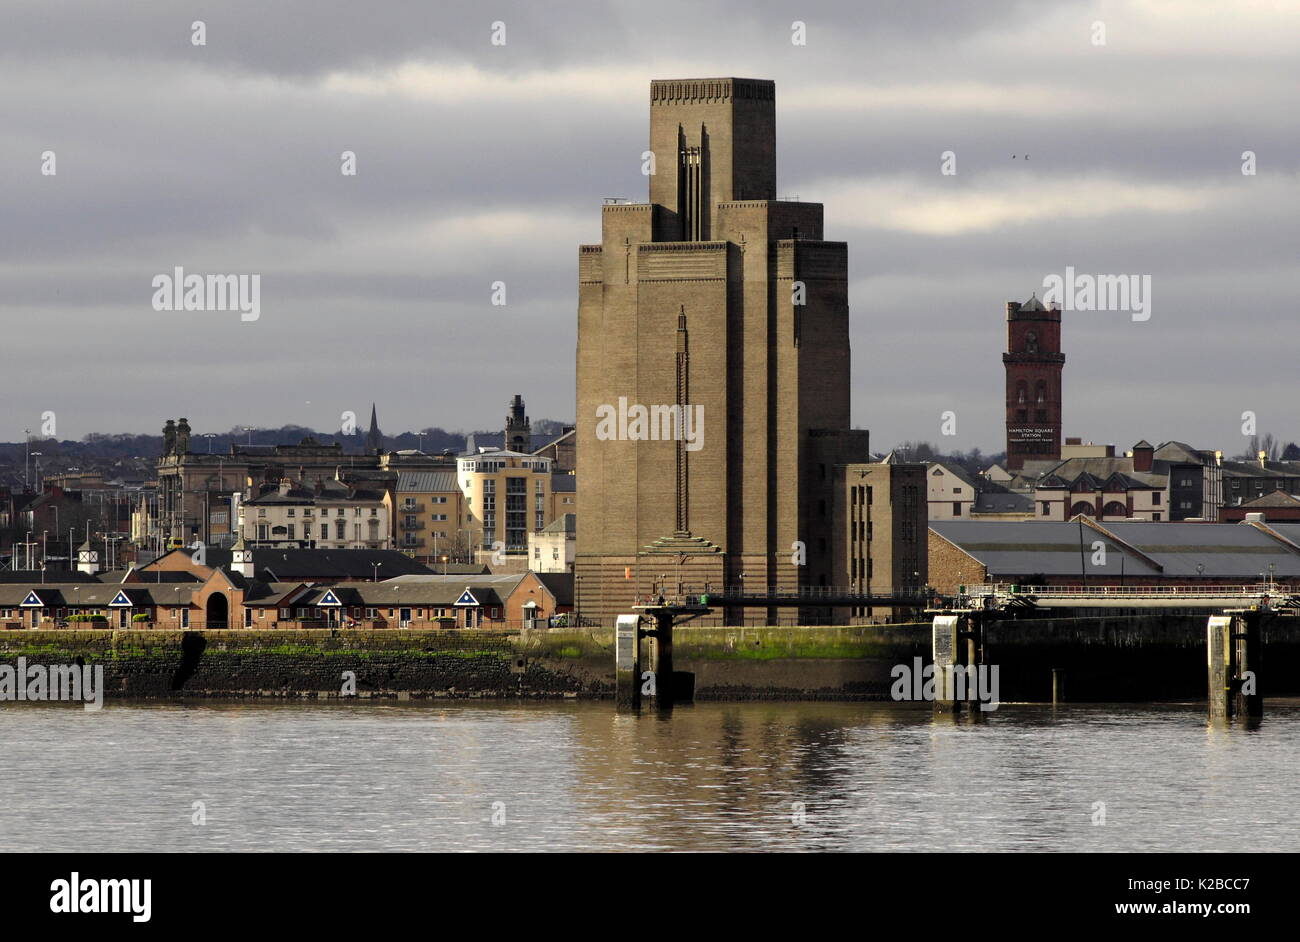 AJAXNETPHOTO. BIRKENHEAD, ENGLAND. - BIRKENHEAD GEORGE'S DOCK VENTILATION AND CONTROL STATION AT PIER HEAD ON THE MERSEY RIVER.